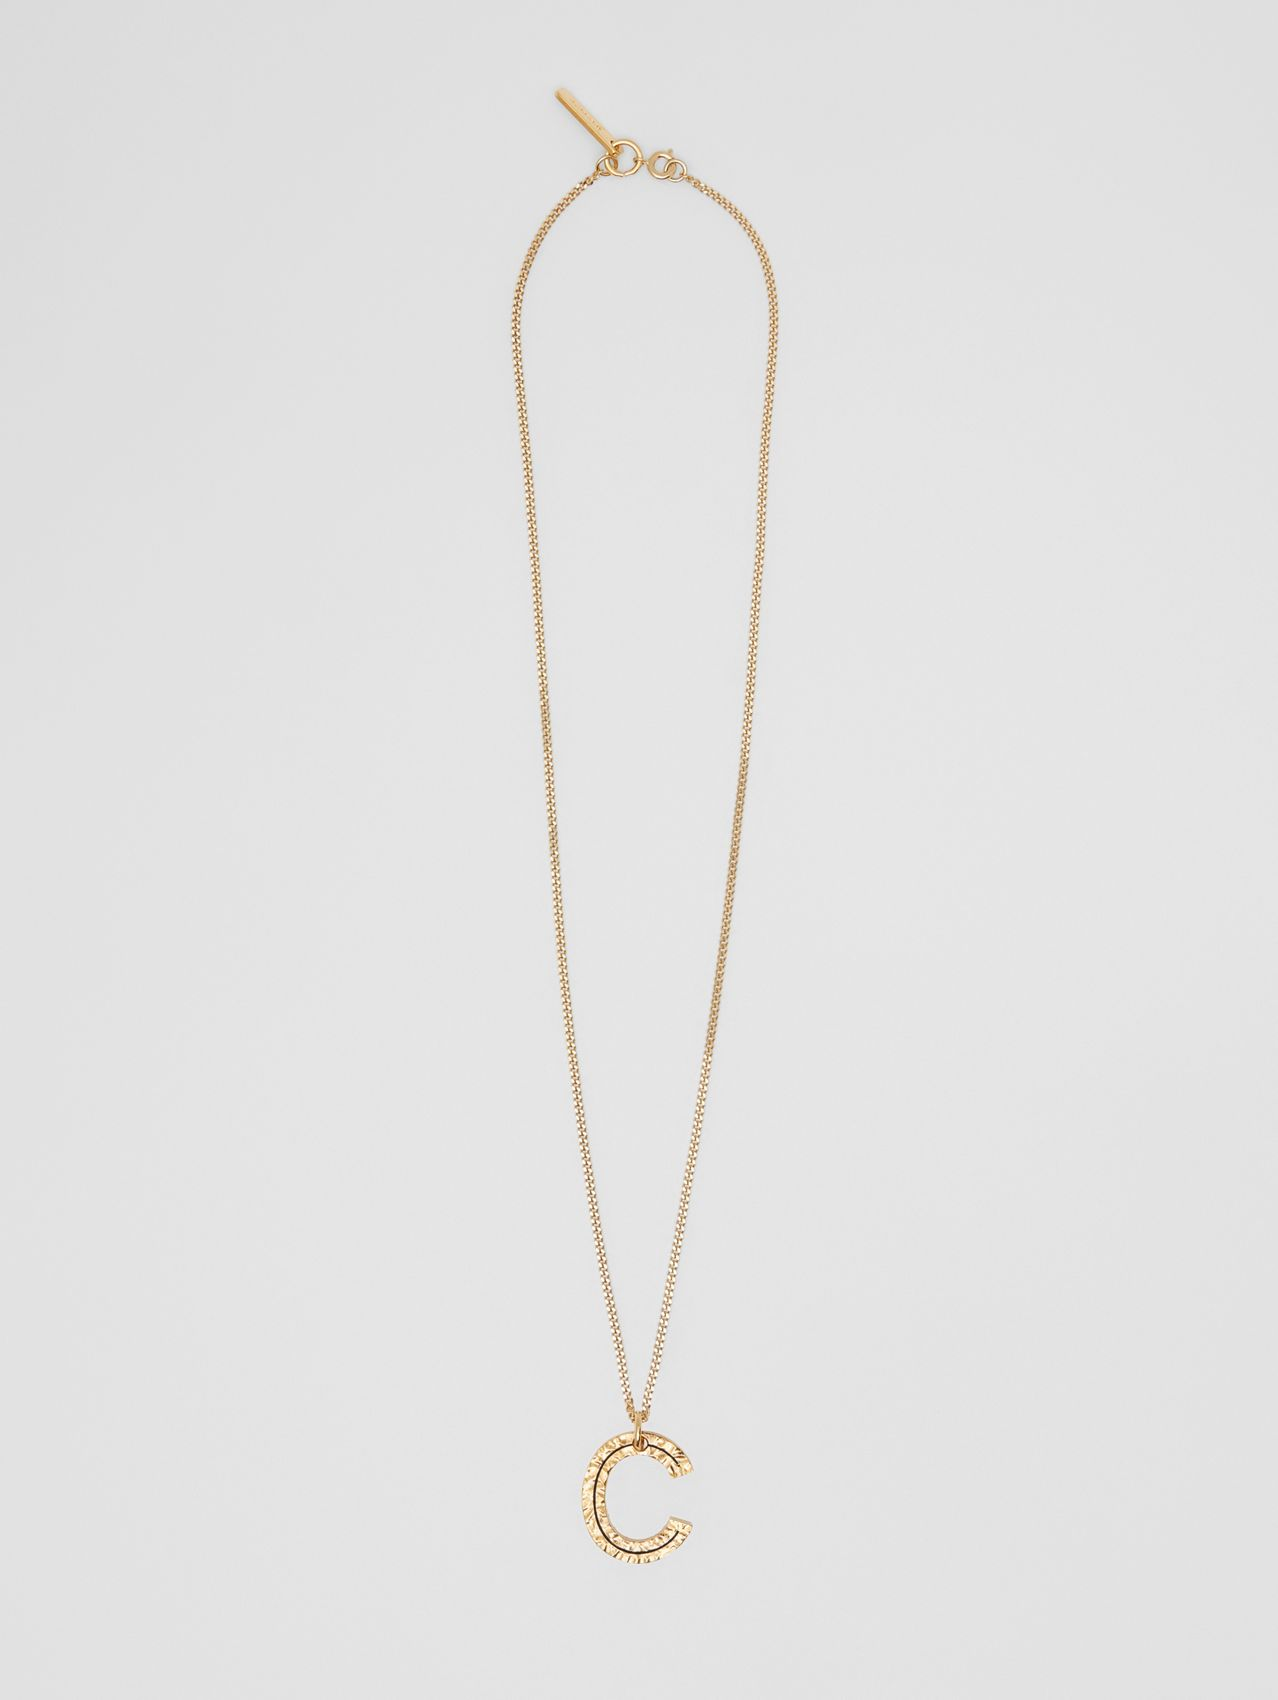 'C' Alphabet Charm Gold-plated Necklace in Light